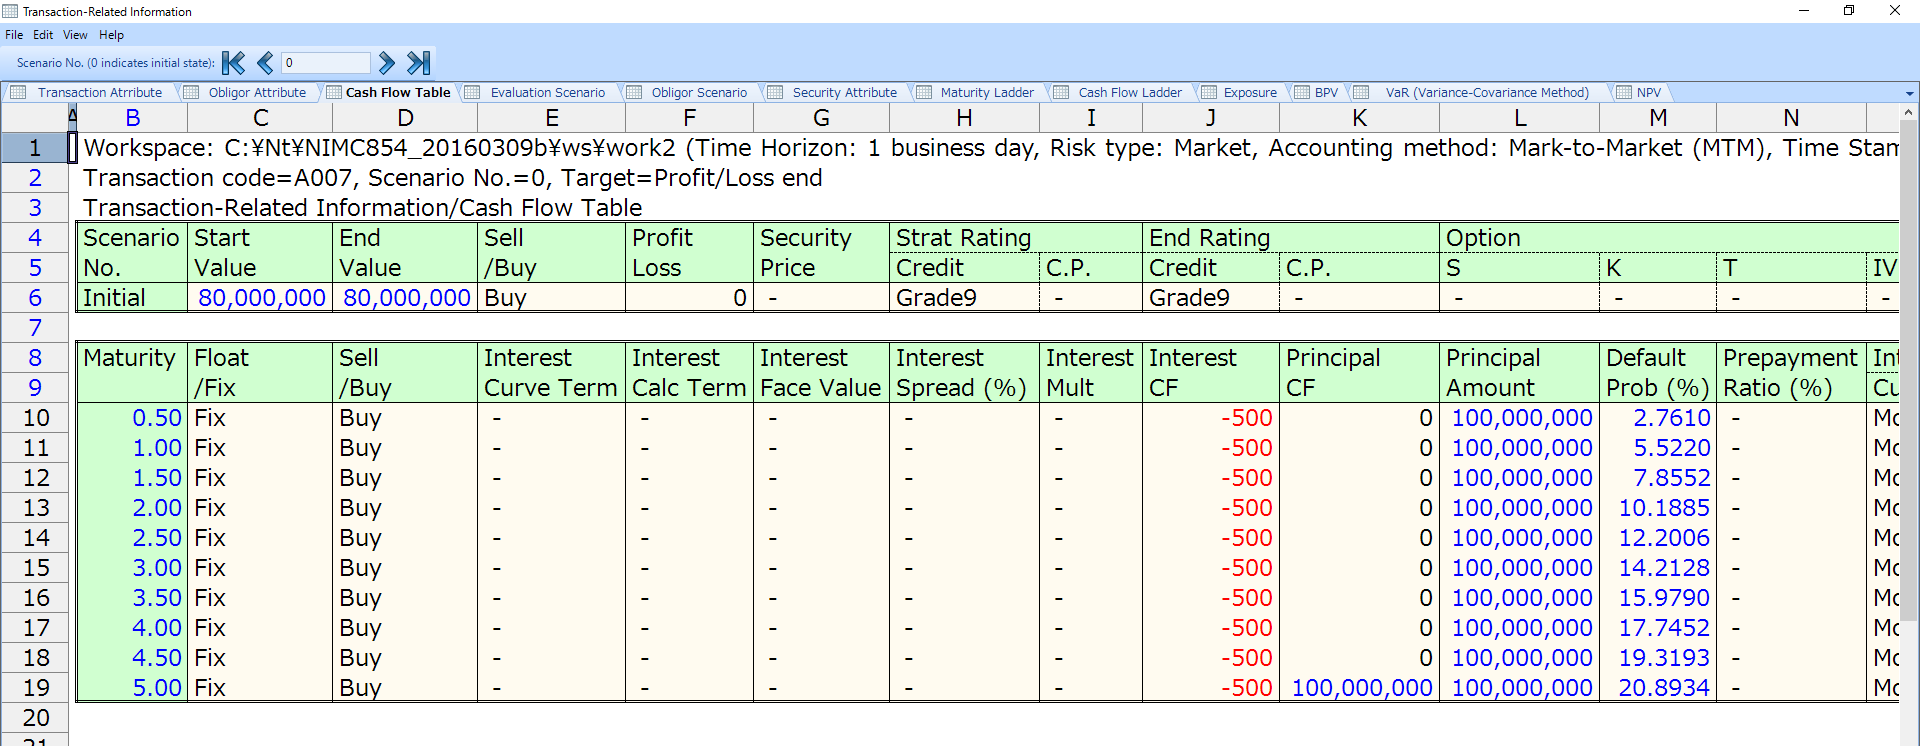 Negative Interest Rate Screen Capture